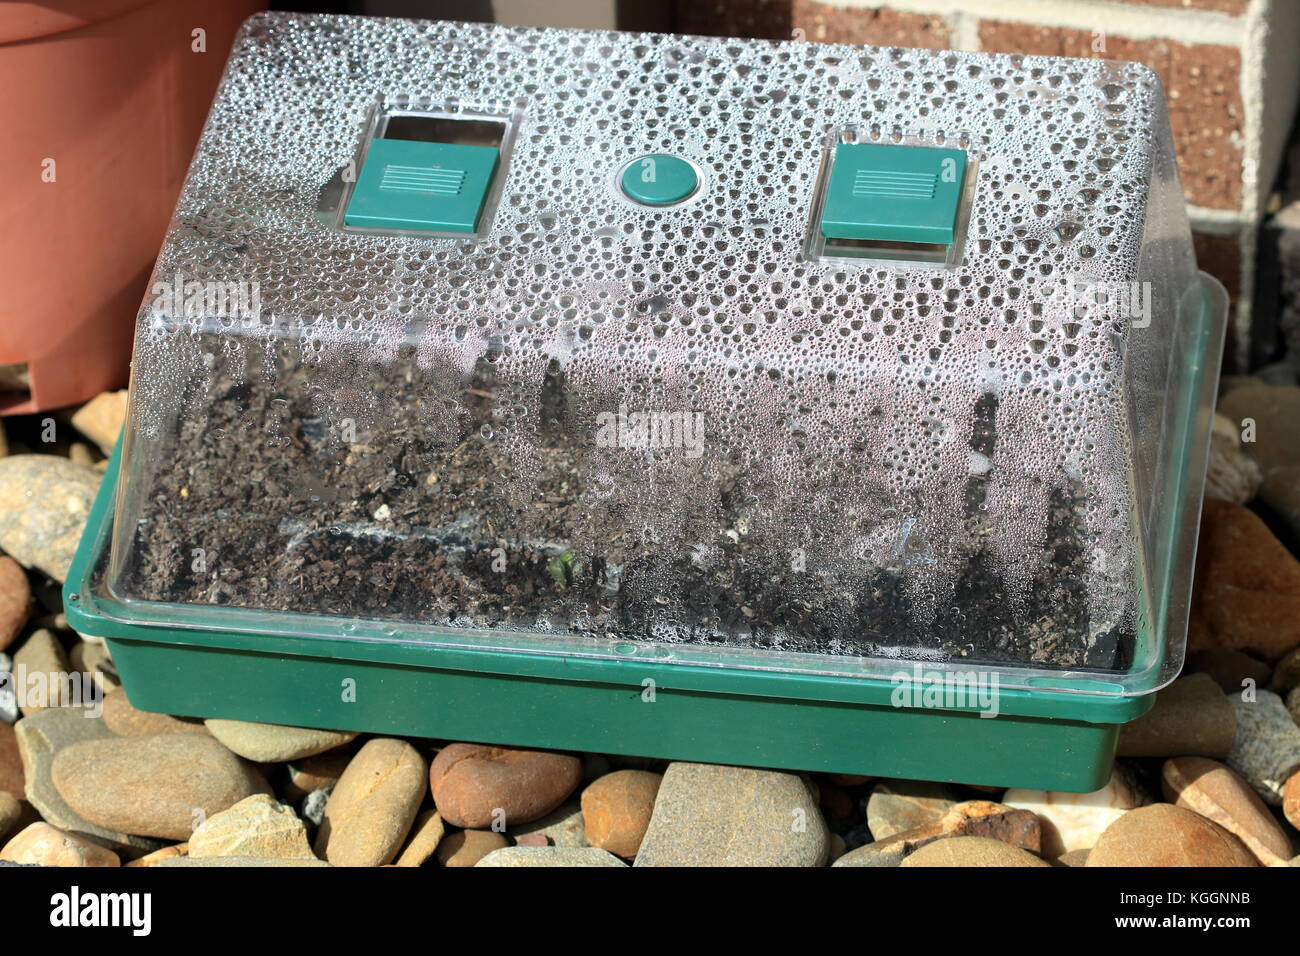 Build-up of condensation  in Mini Green House With Seed Tray - Stock Image